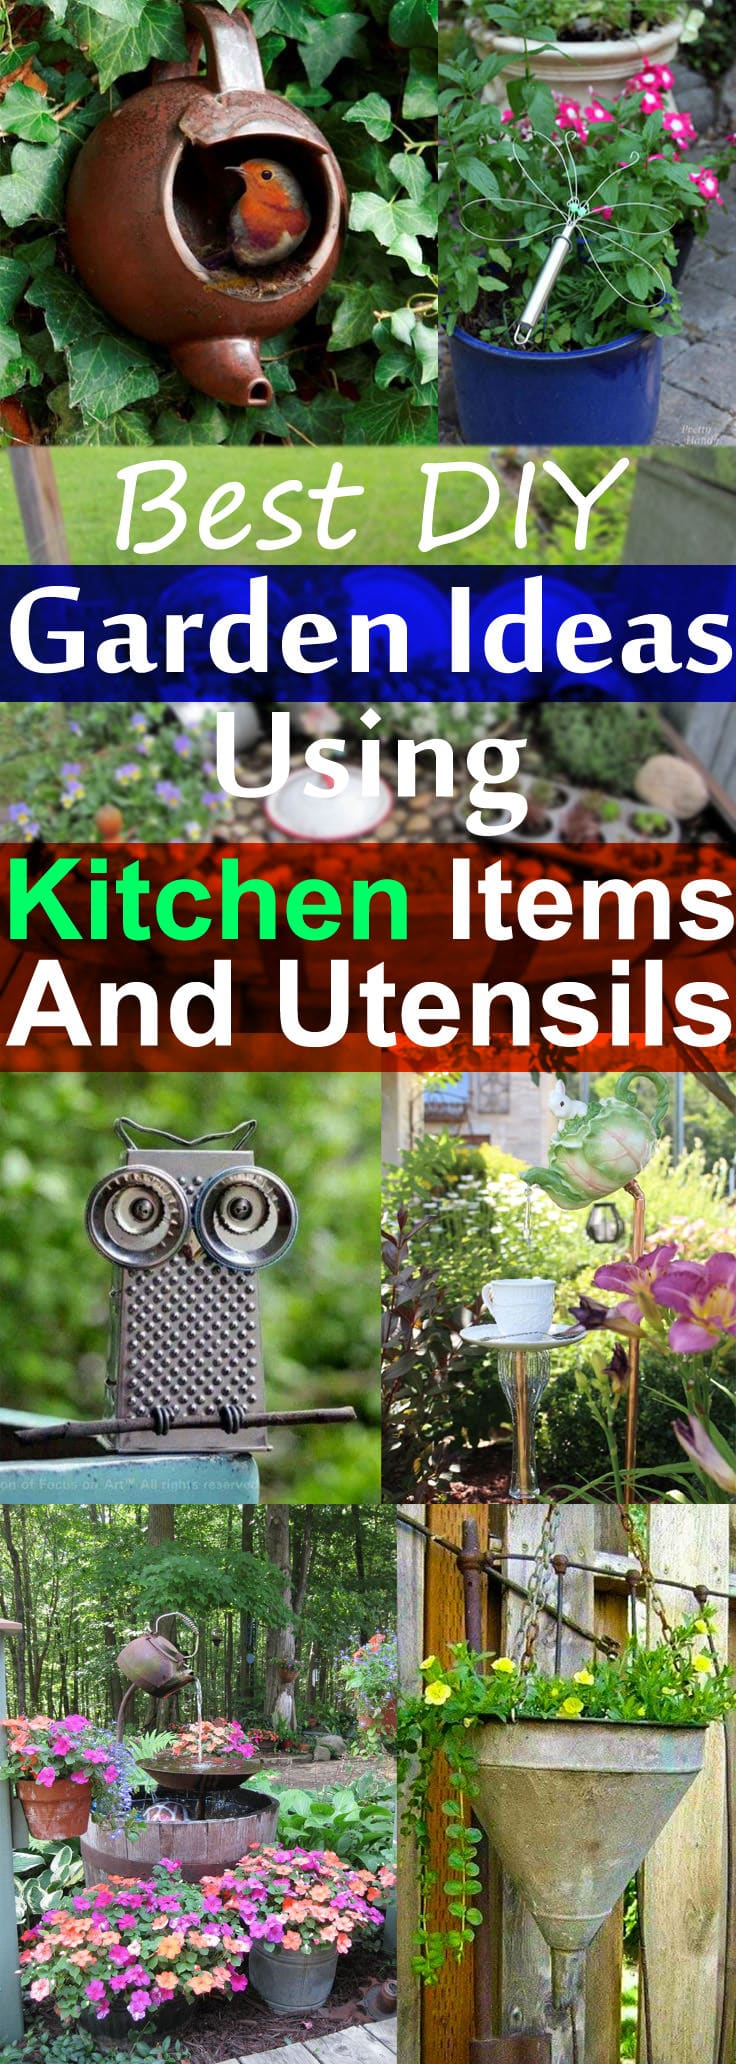 If you have unused kitchen items or old utensils, for example: Tea mug, saucepan etc. do not rush to throw them away-- BEFORE DOING ANYTHING look at these DIY garden ideas from kitchen items and utensils.